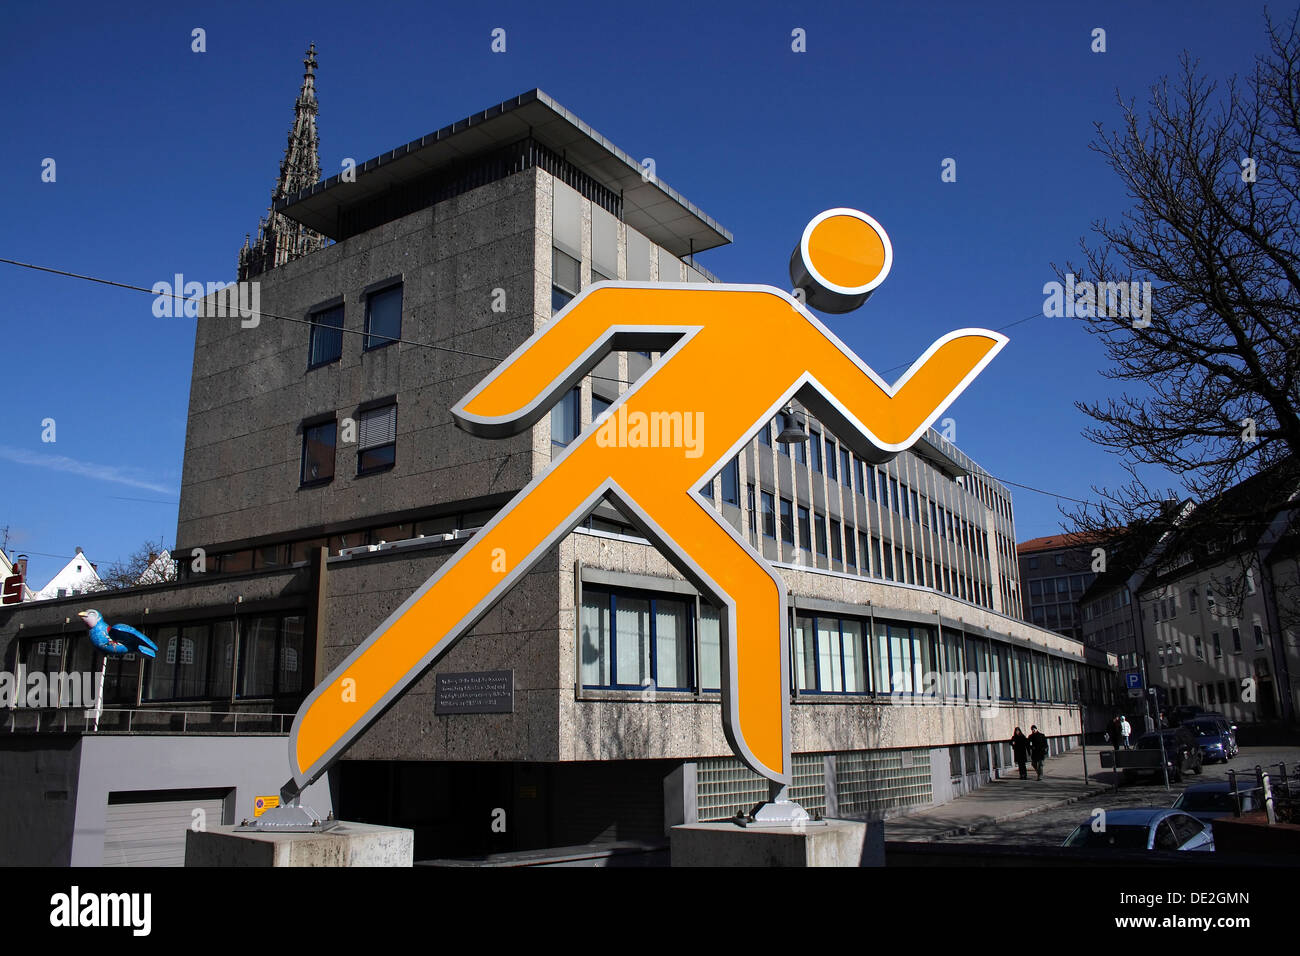 Human sculpture, depicted in movement - Stock Image